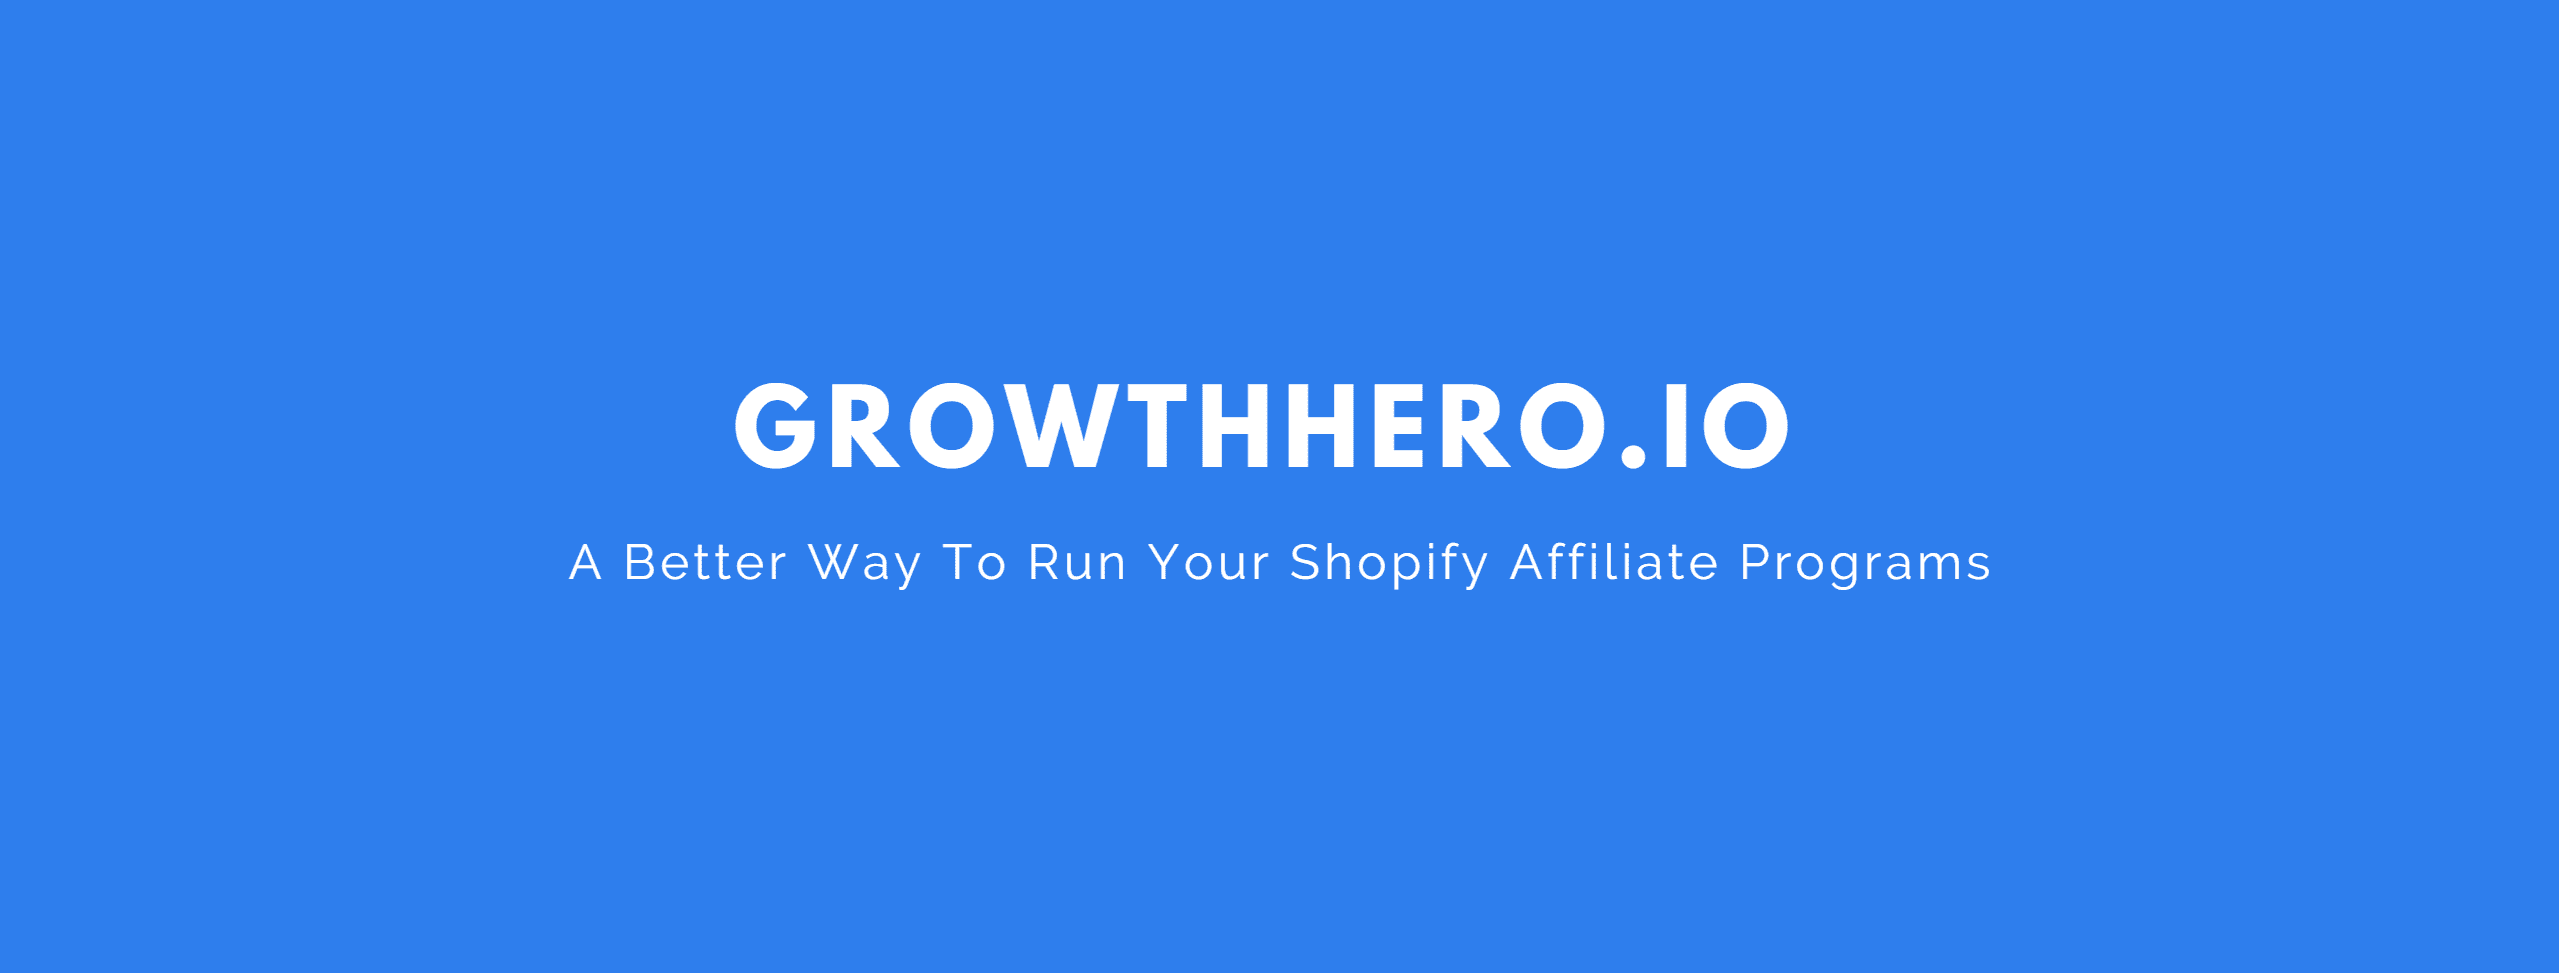 growthhero logo